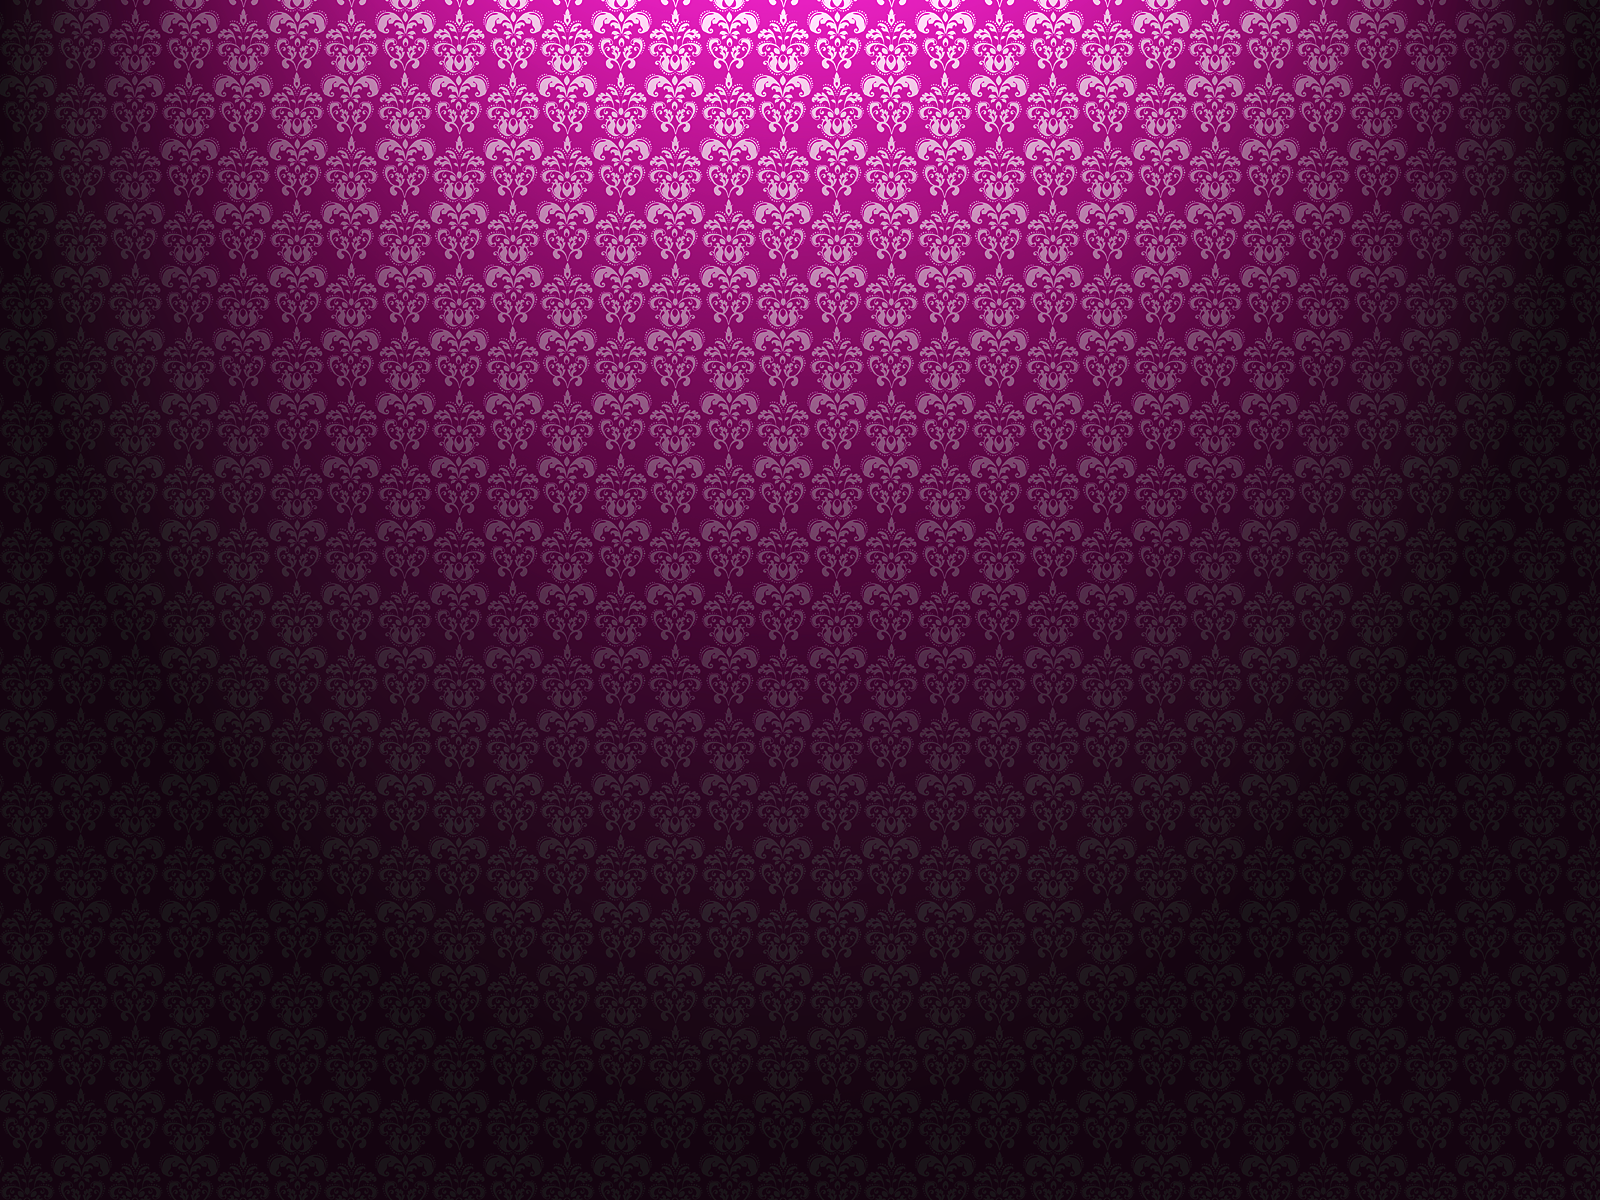 Damask wallpaper 3 by mia77 on deviantart for Damask wallpaper